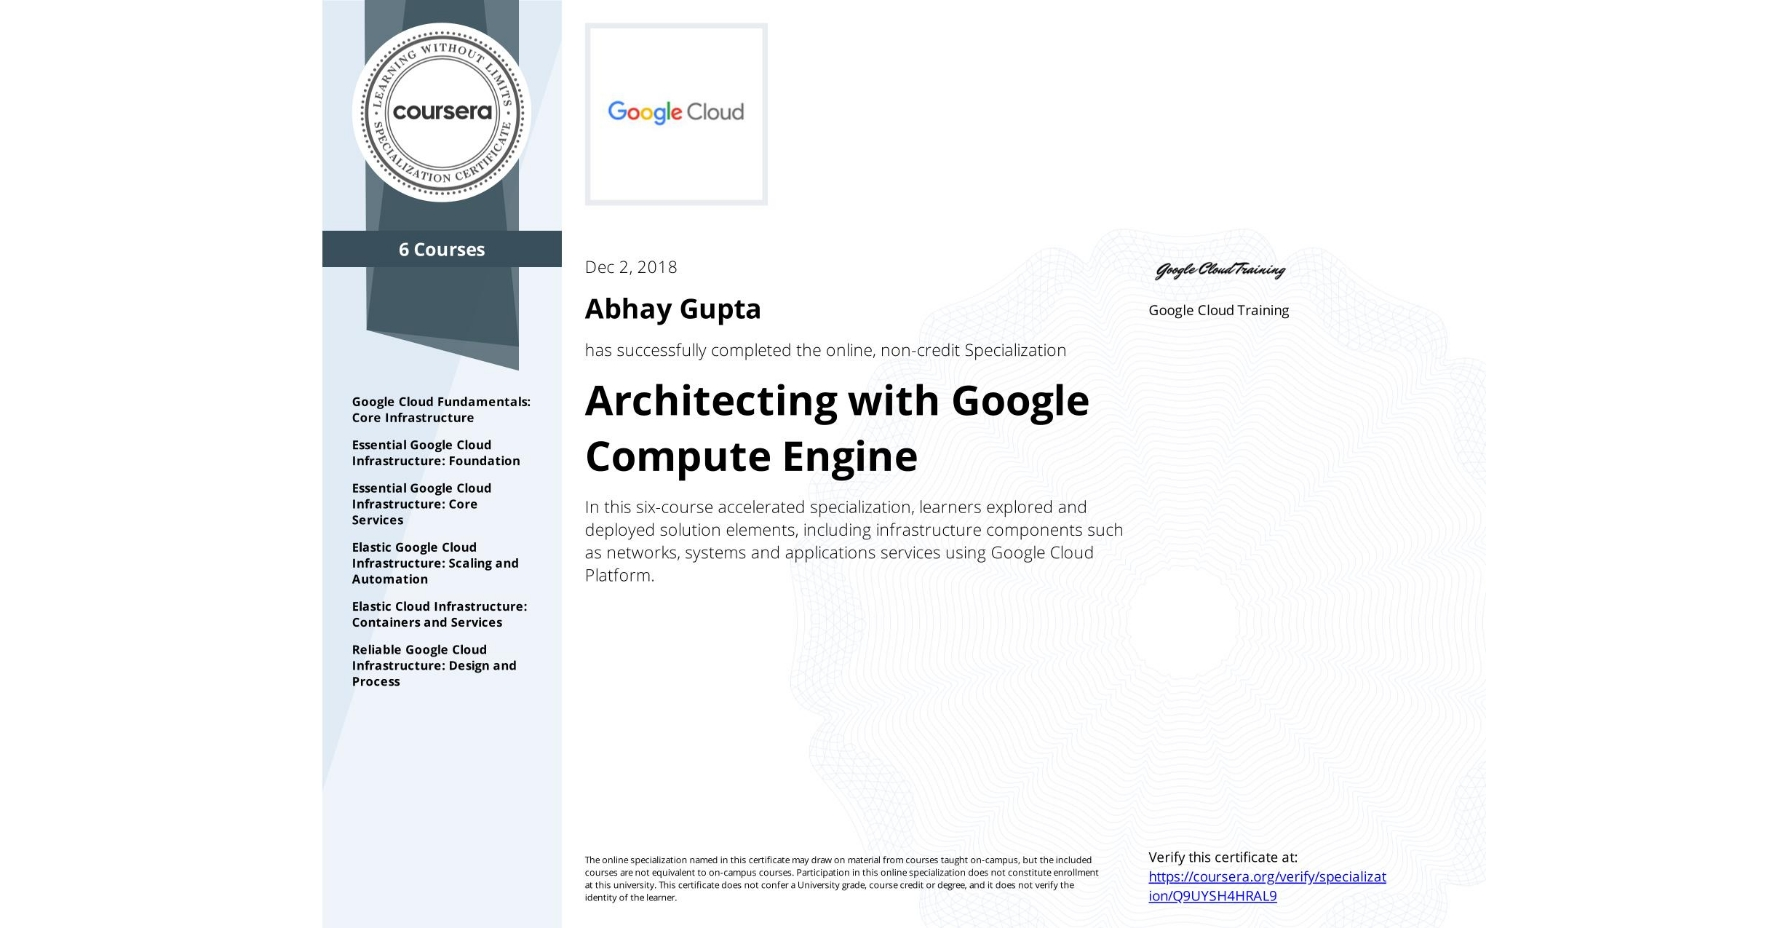 View certificate for Abhay Gupta, Architecting with Google Compute Engine, offered through Coursera. In this six-course accelerated specialization, learners explored and deployed solution elements, including infrastructure components such as networks, systems and applications services using Google Cloud Platform.